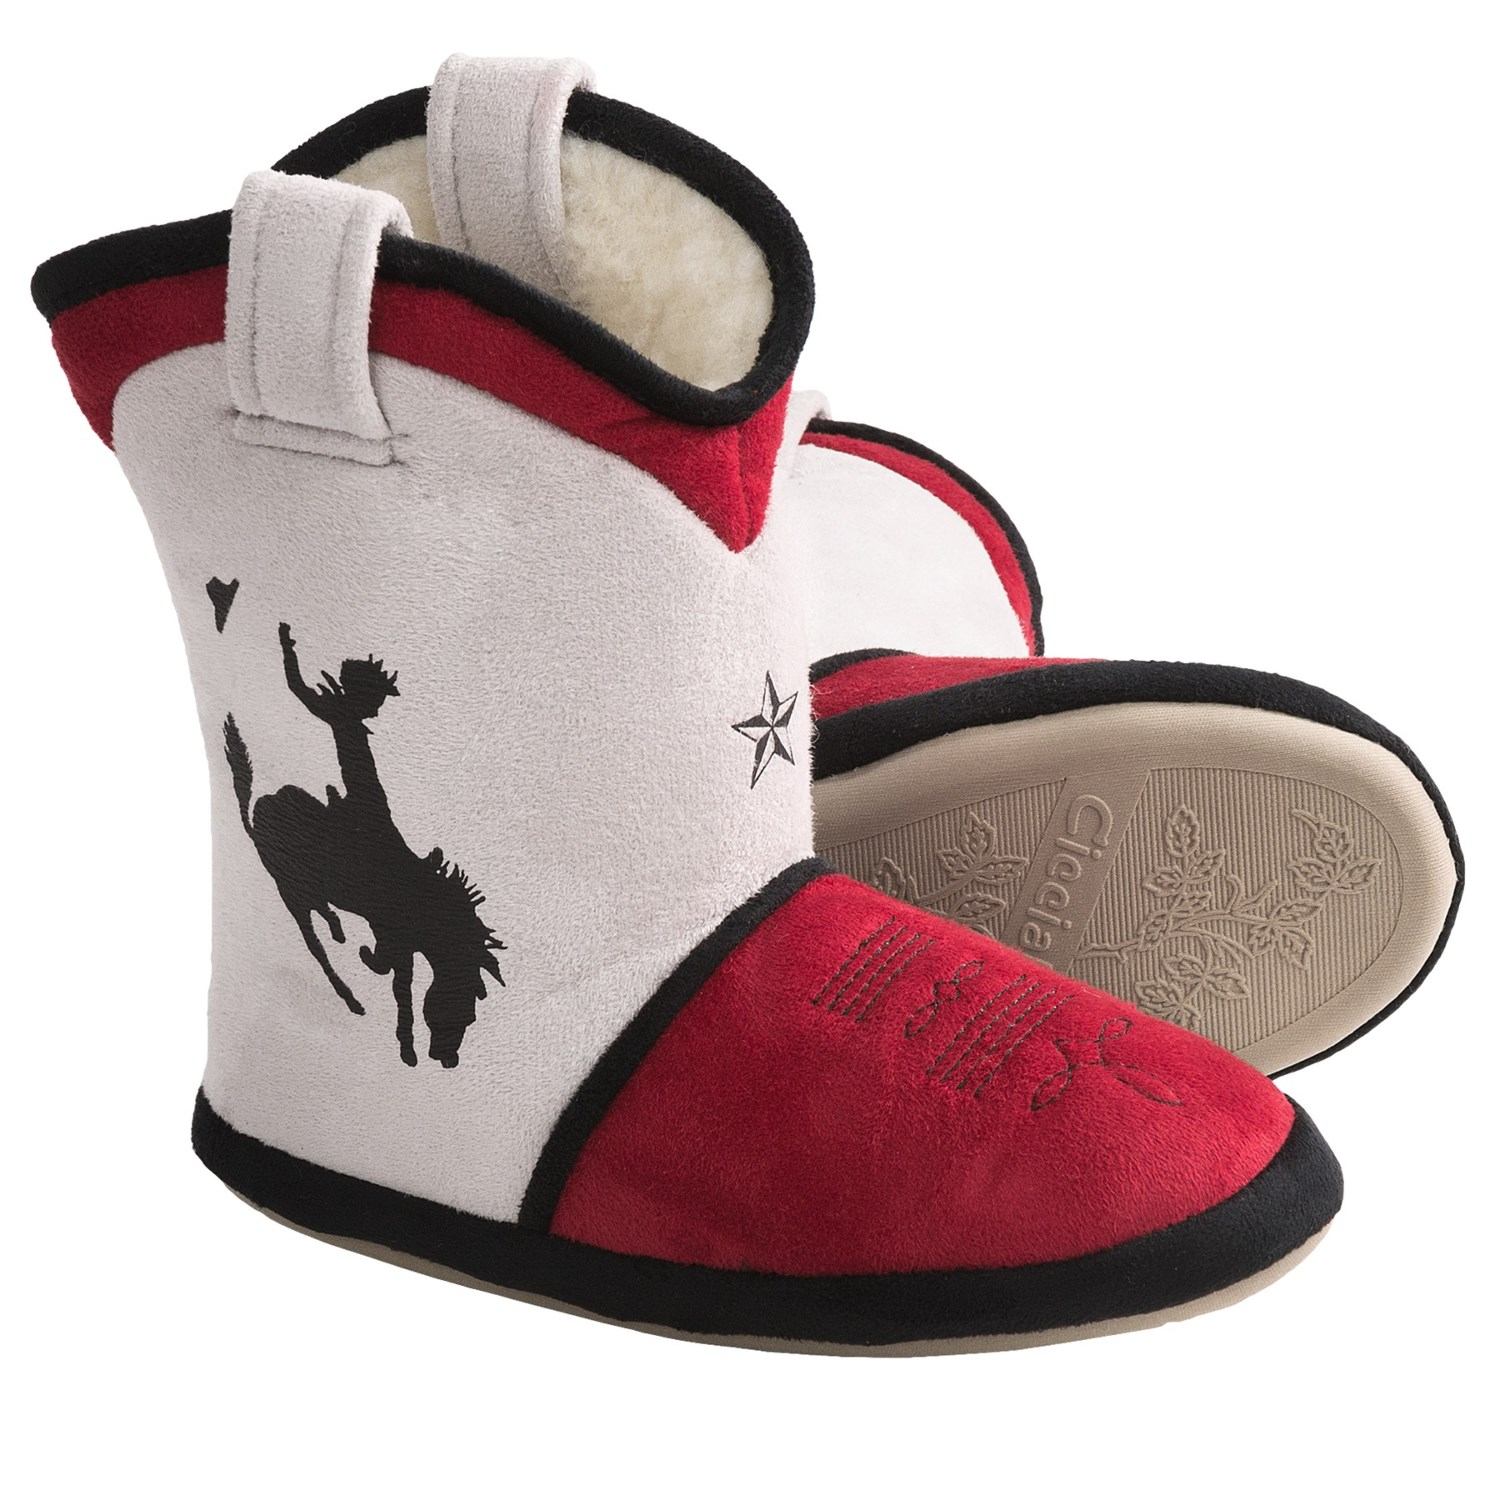 Find great deals on eBay for little girls shoes. Shop with confidence.